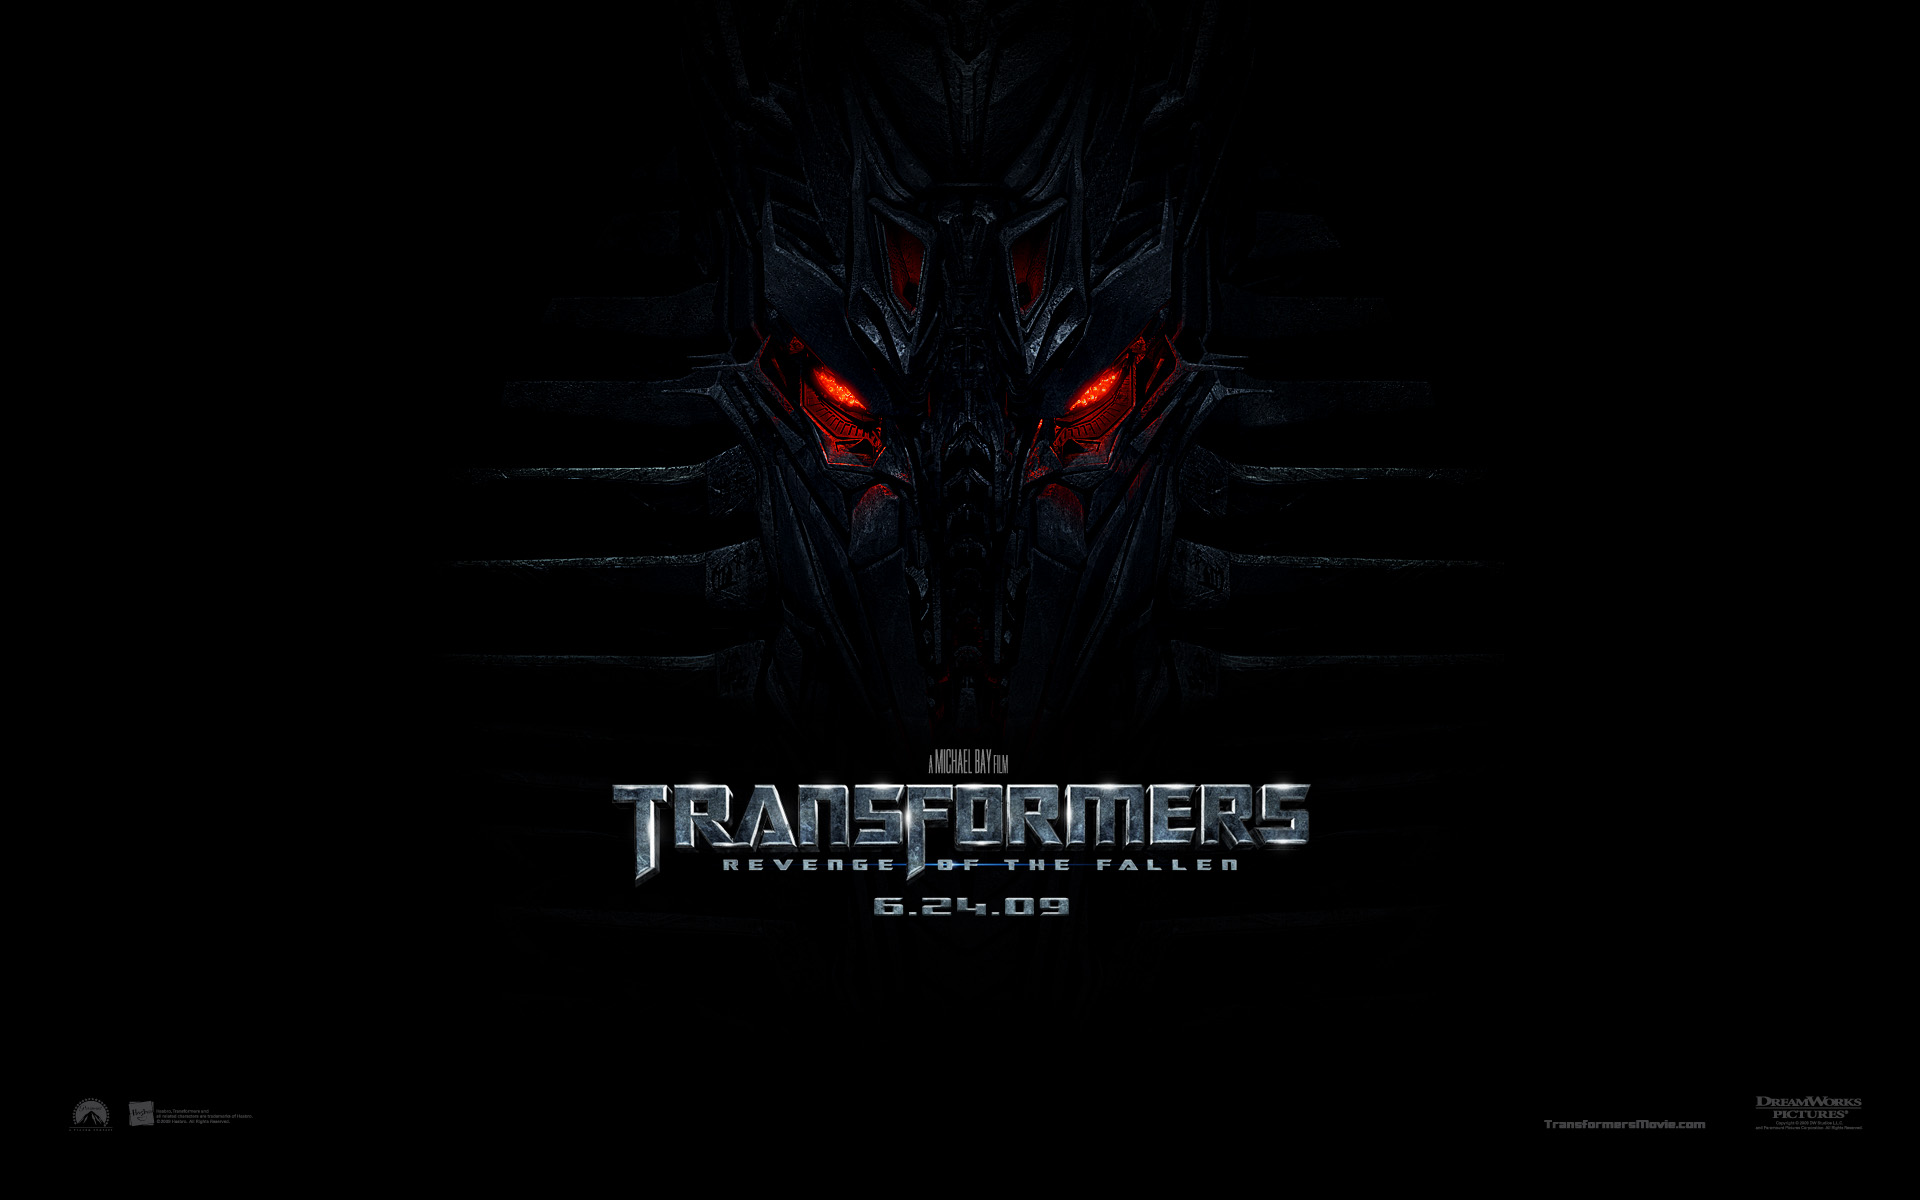 Transformers Revenge of the Fallen Wallpaper Number 1 1920 x 1200 1920x1200